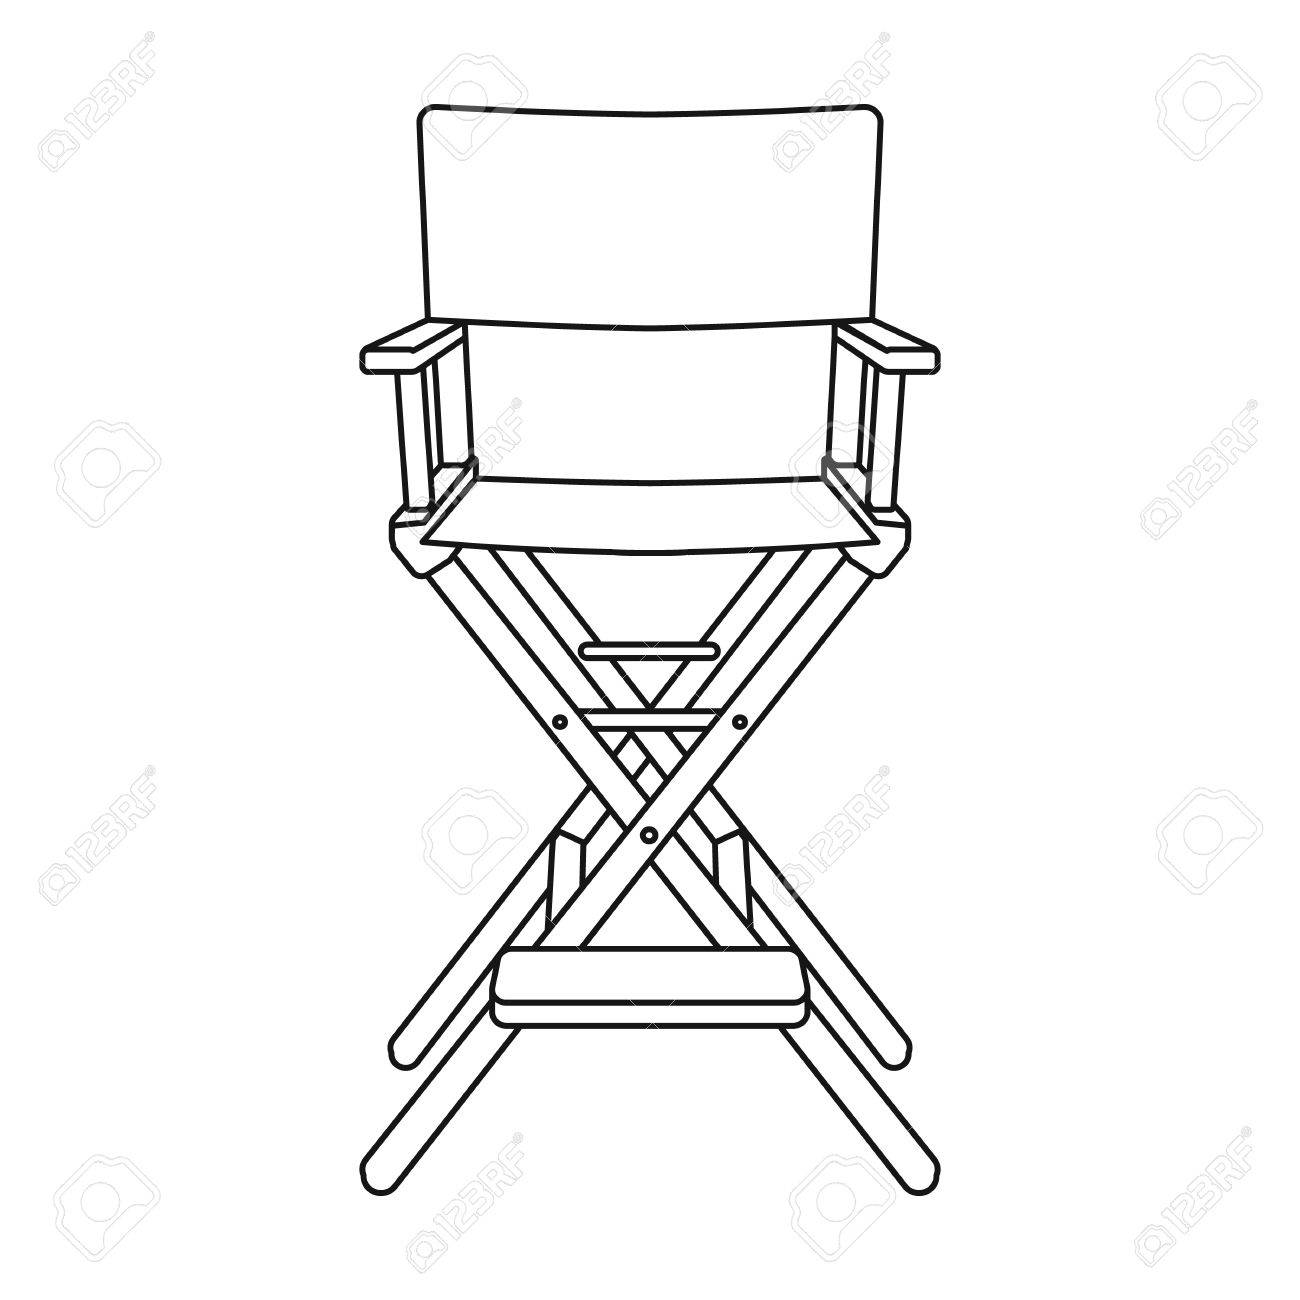 directors chair white beach chairs on clearance director s icon in outline style isolated background films and cinema symbol vector